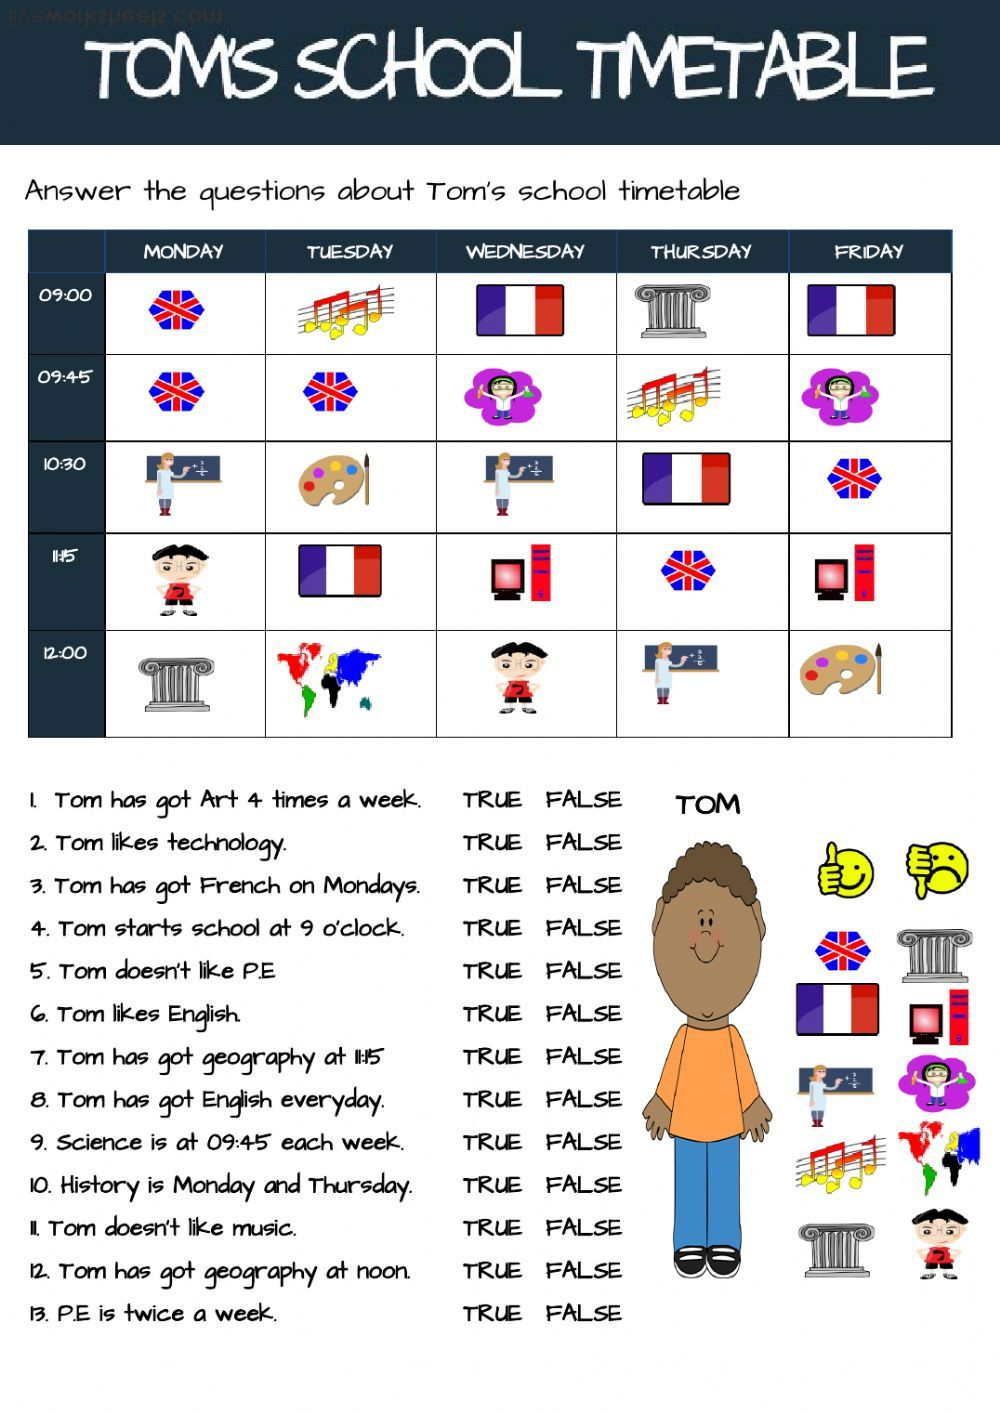 School Subjects Interactive And Downloadable Worksheet You Can Do The Exercises Online Or Downl School Subjects School Timetable Reading Comprehension Lessons [ 1414 x 1000 Pixel ]